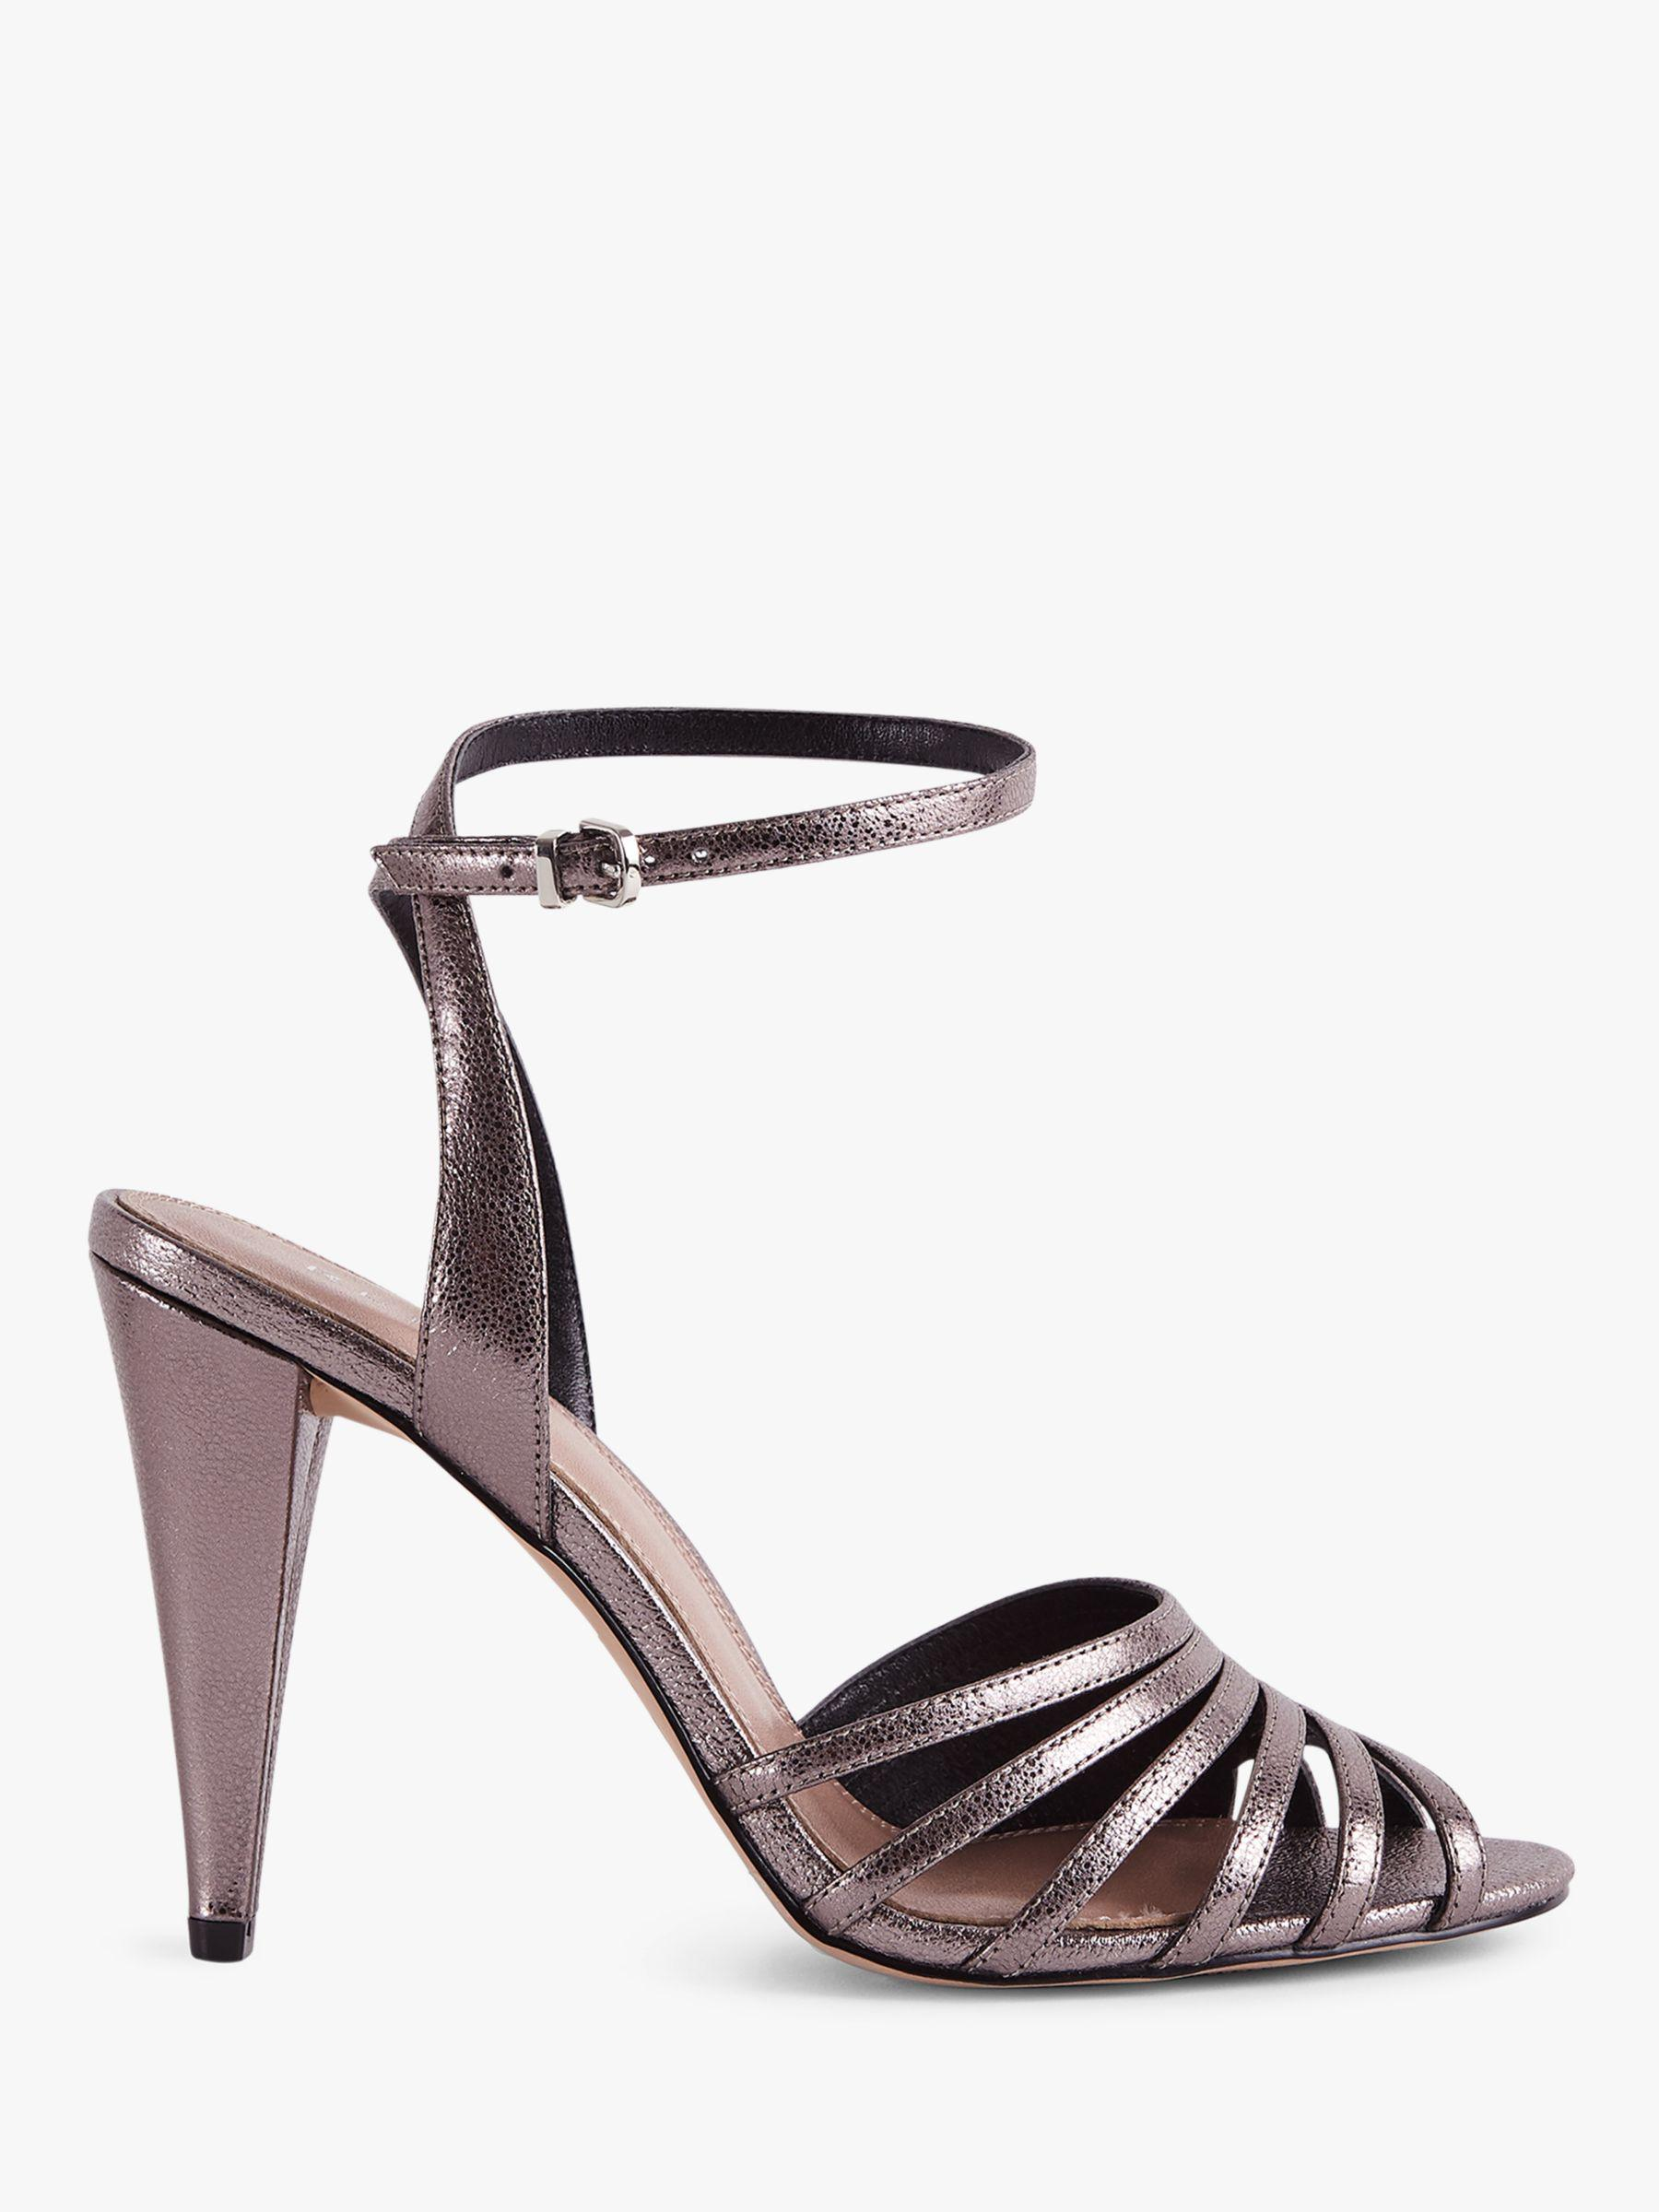 66e500c13 Reiss Garbo Metallic High Heeled Strappy Sandals in Gray - Lyst